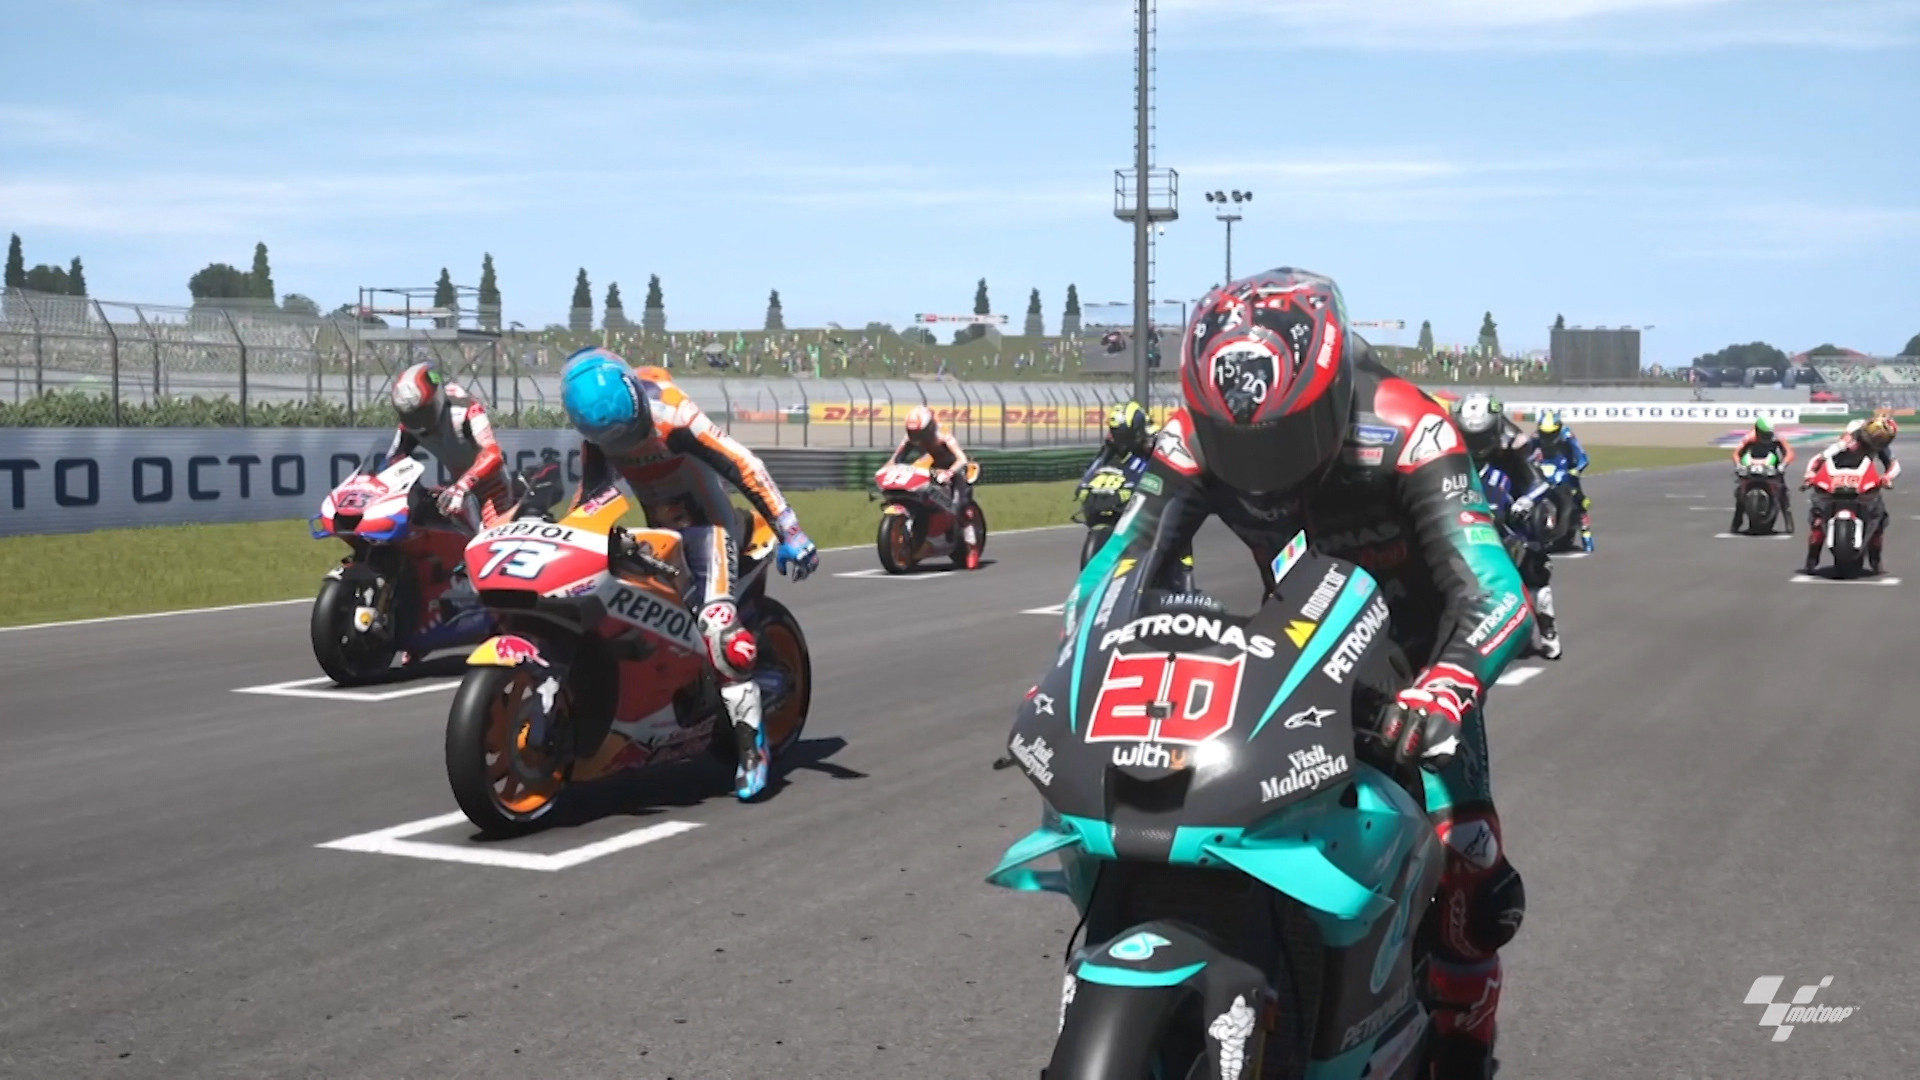 MotoGP riders on the starting grid for Virtual Race 4 at Misano. Image courtesy Dorna.